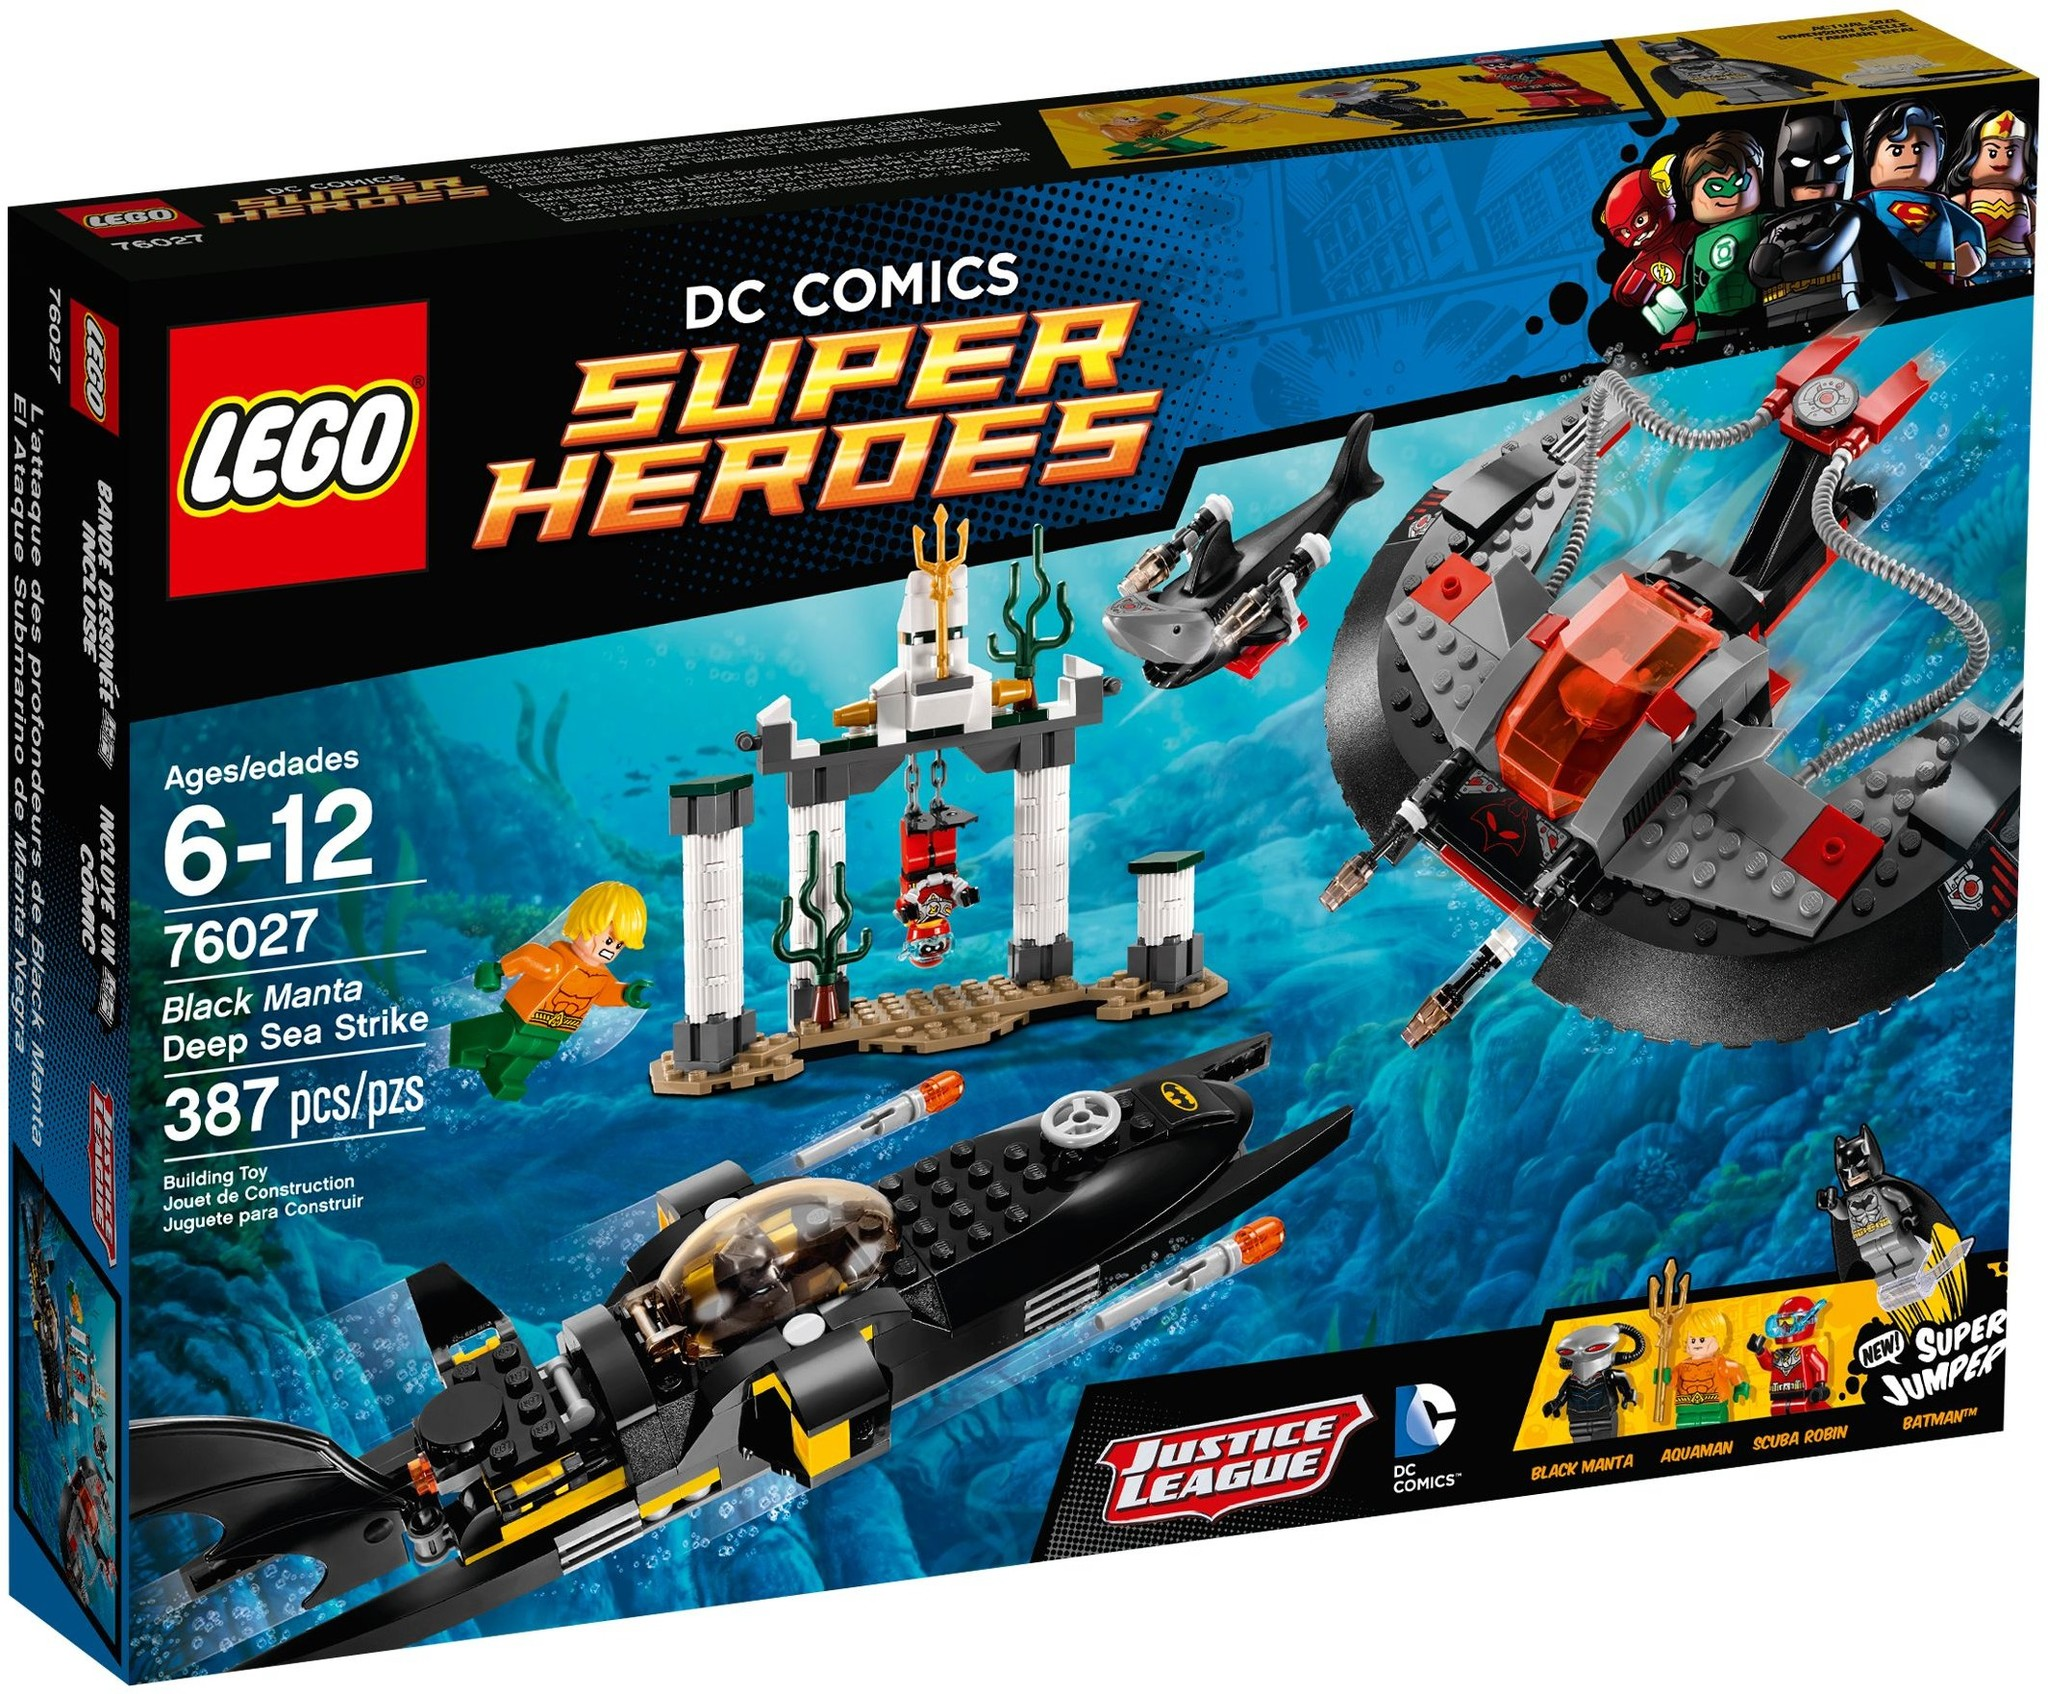 LEGO 76027 - Super Heroes - Black Manta Deep Sea Strike